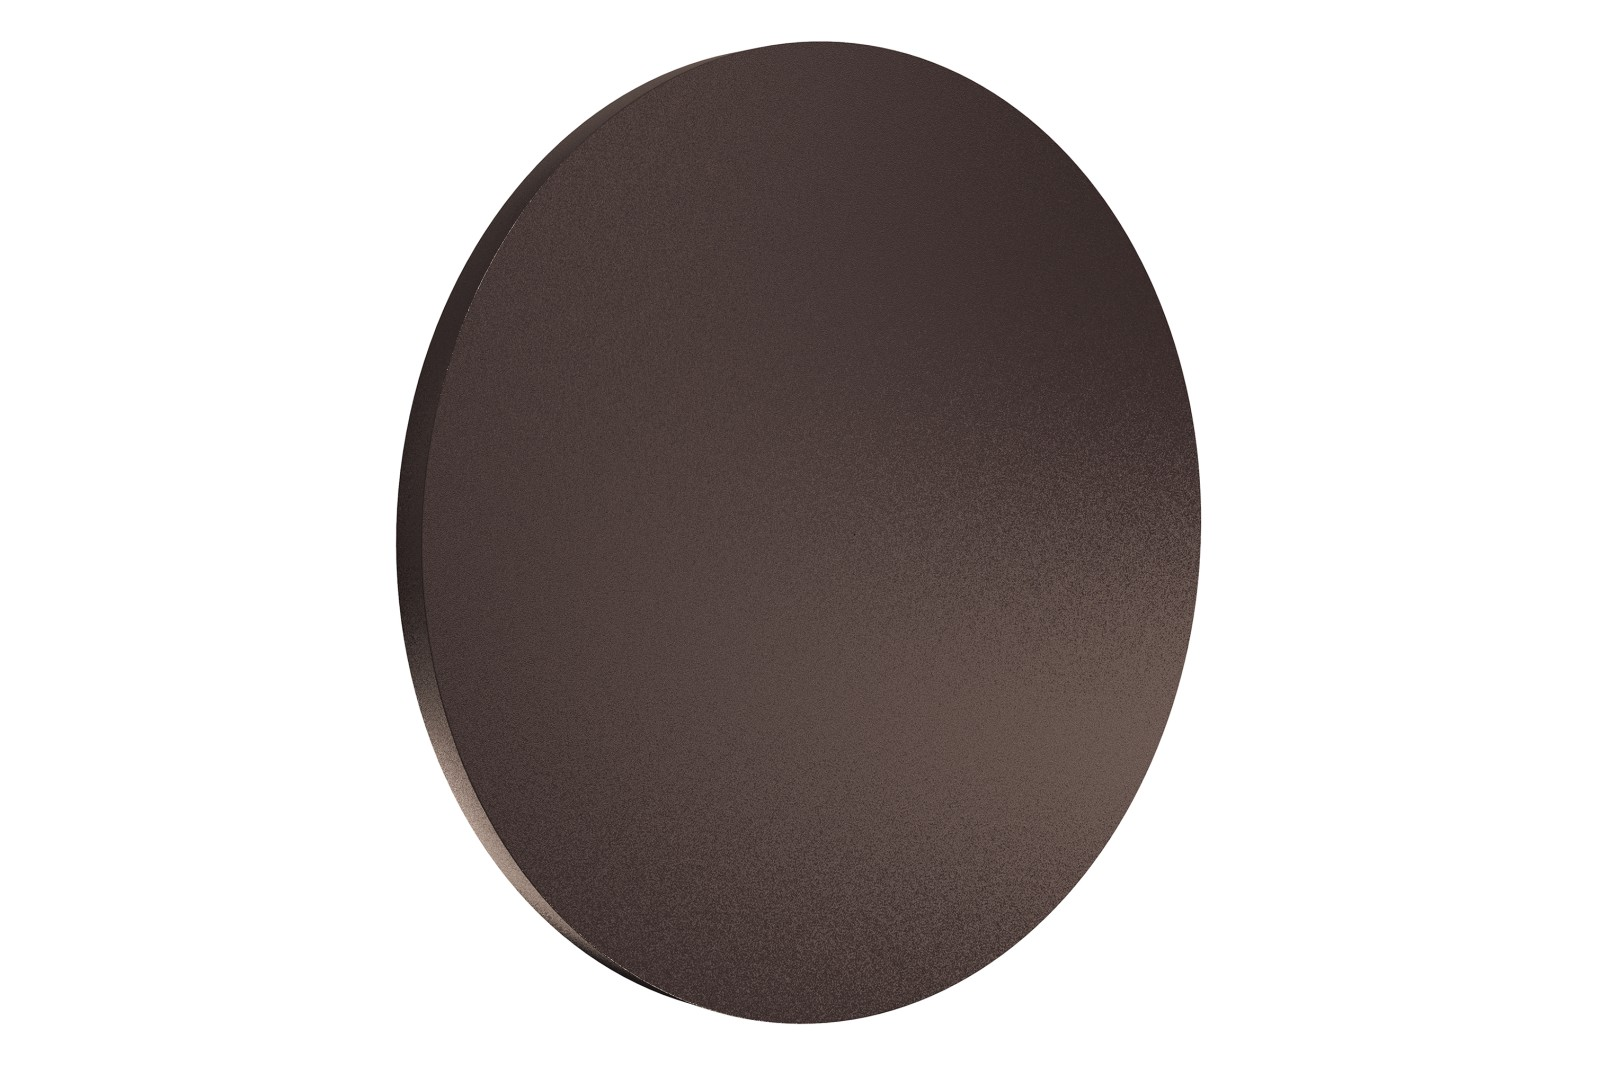 Camouflage 240 Wall Light Metal Deep Brown, Mid-Power LED 1281lm = FIXT 773lm CRI80